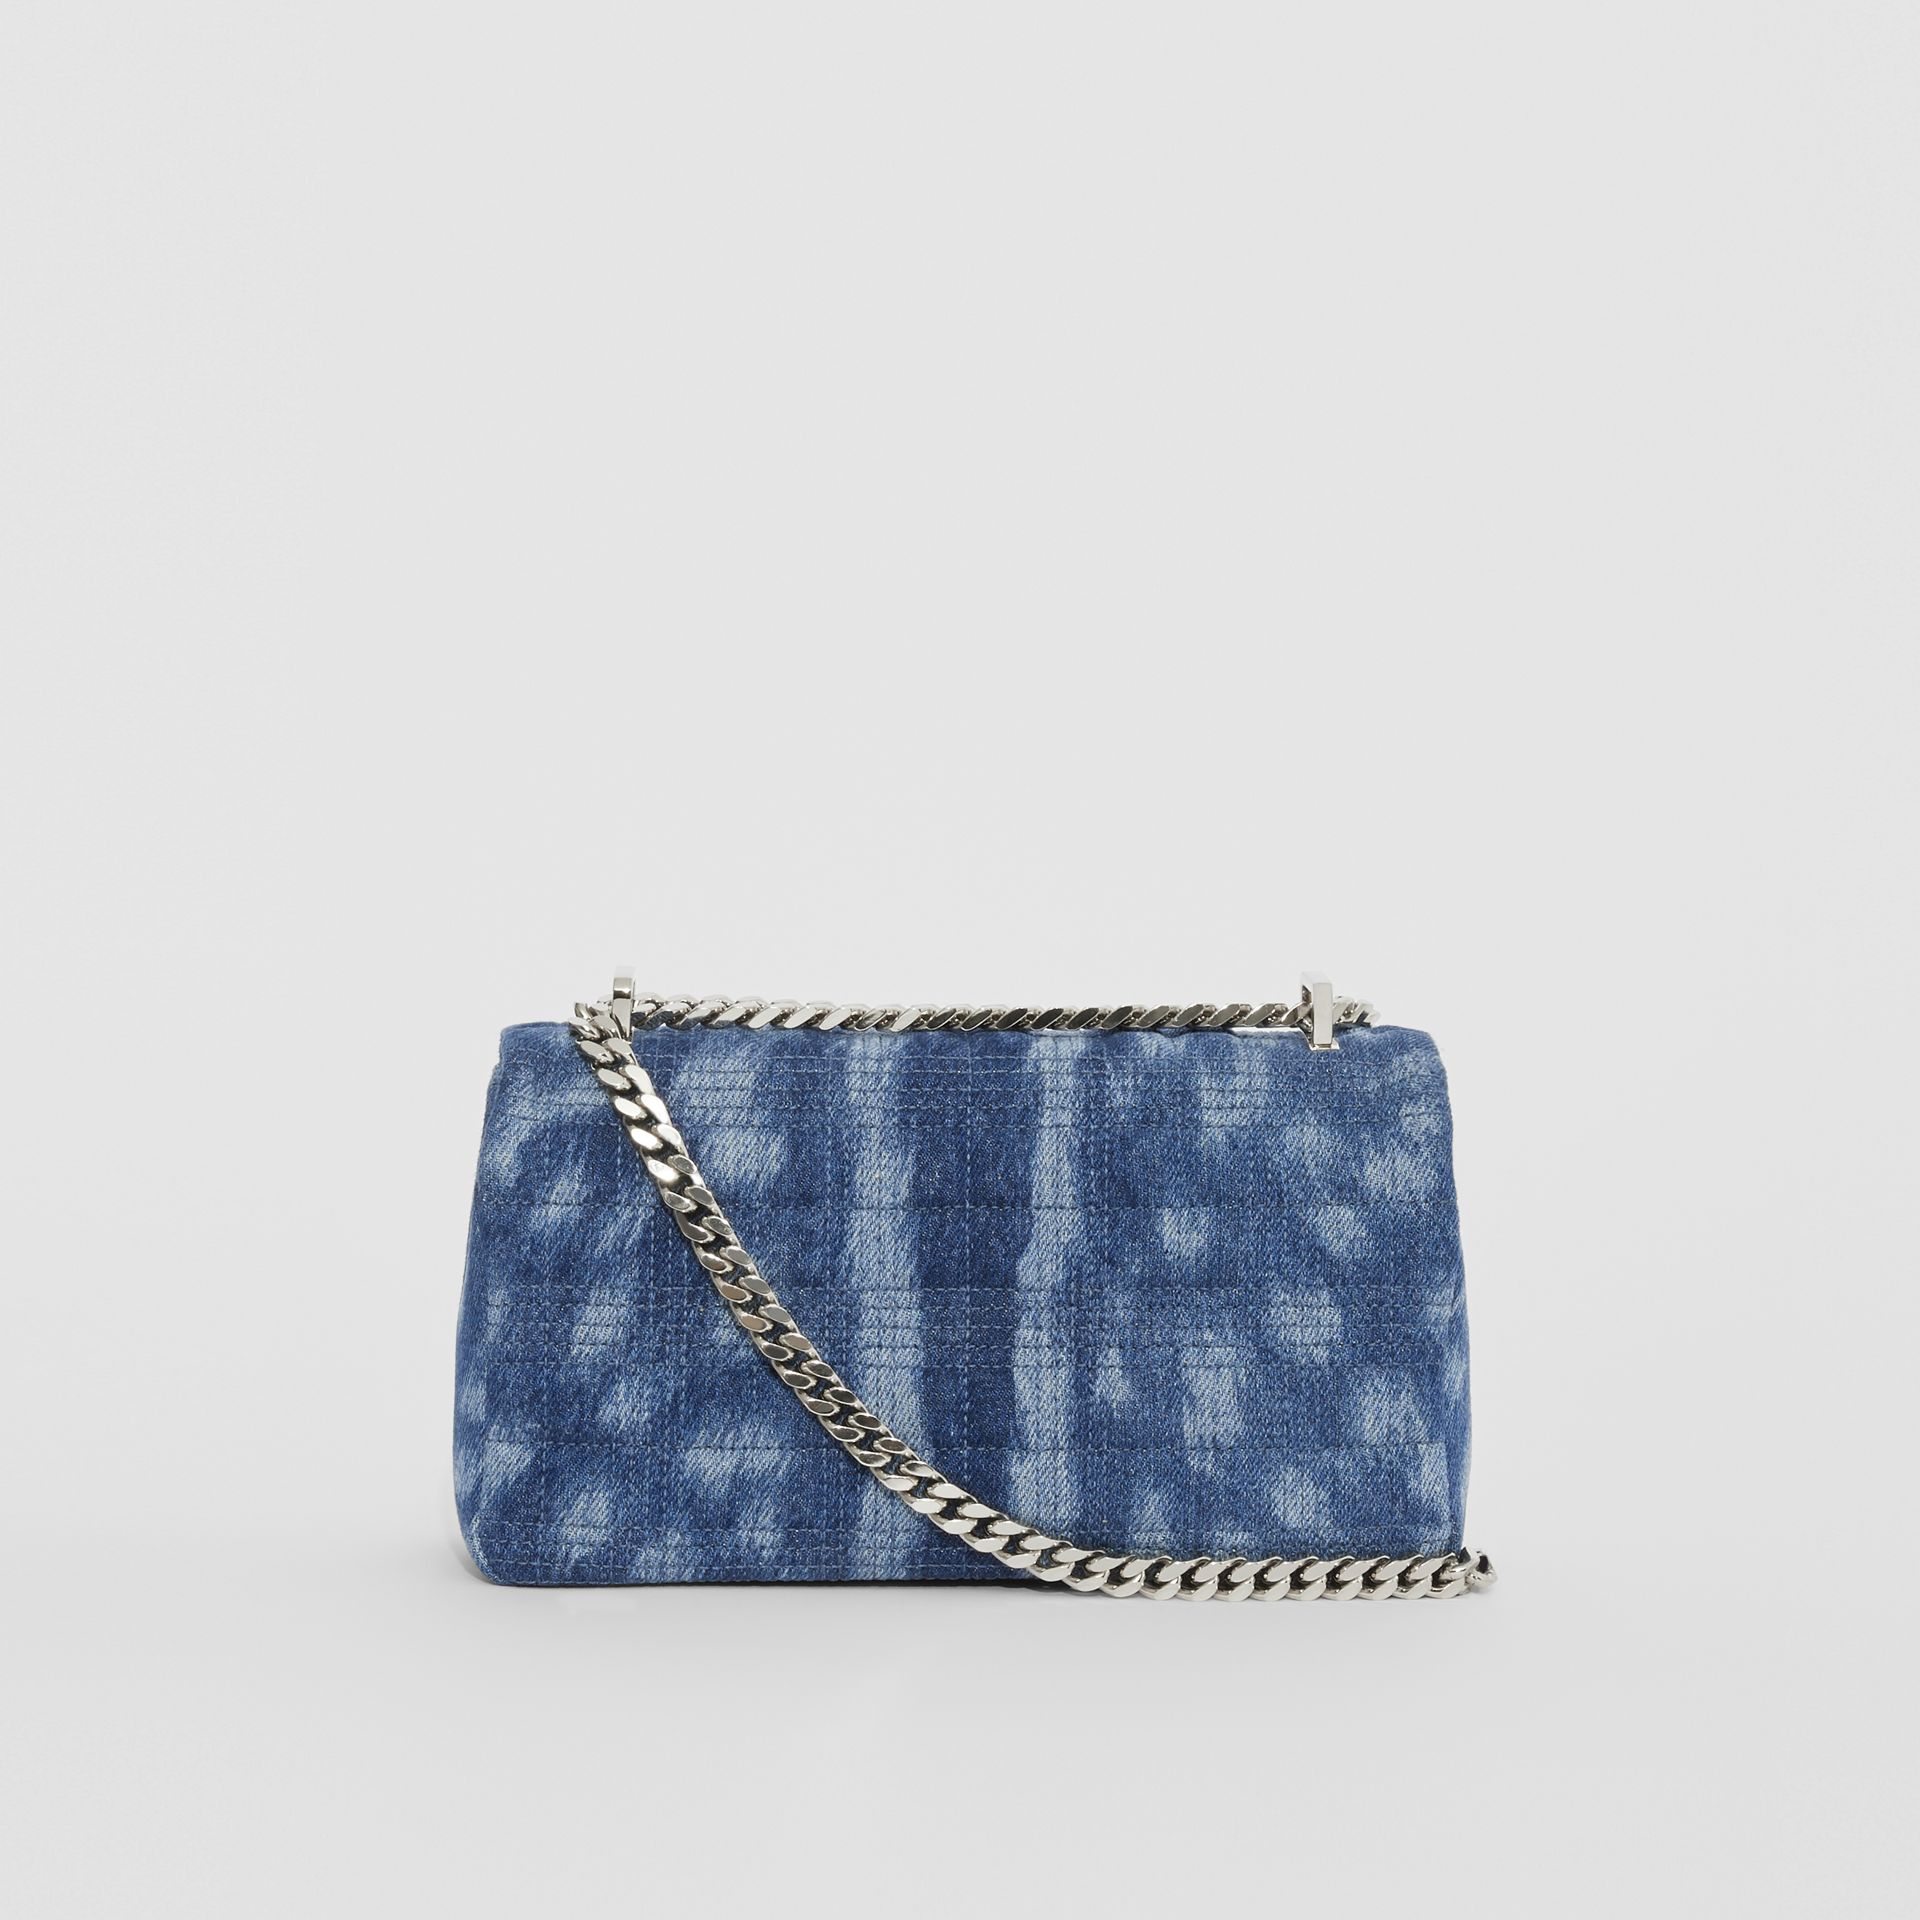 Small Quilted Denim Lola Bag in Blue - Women | Burberry Canada - gallery image 7